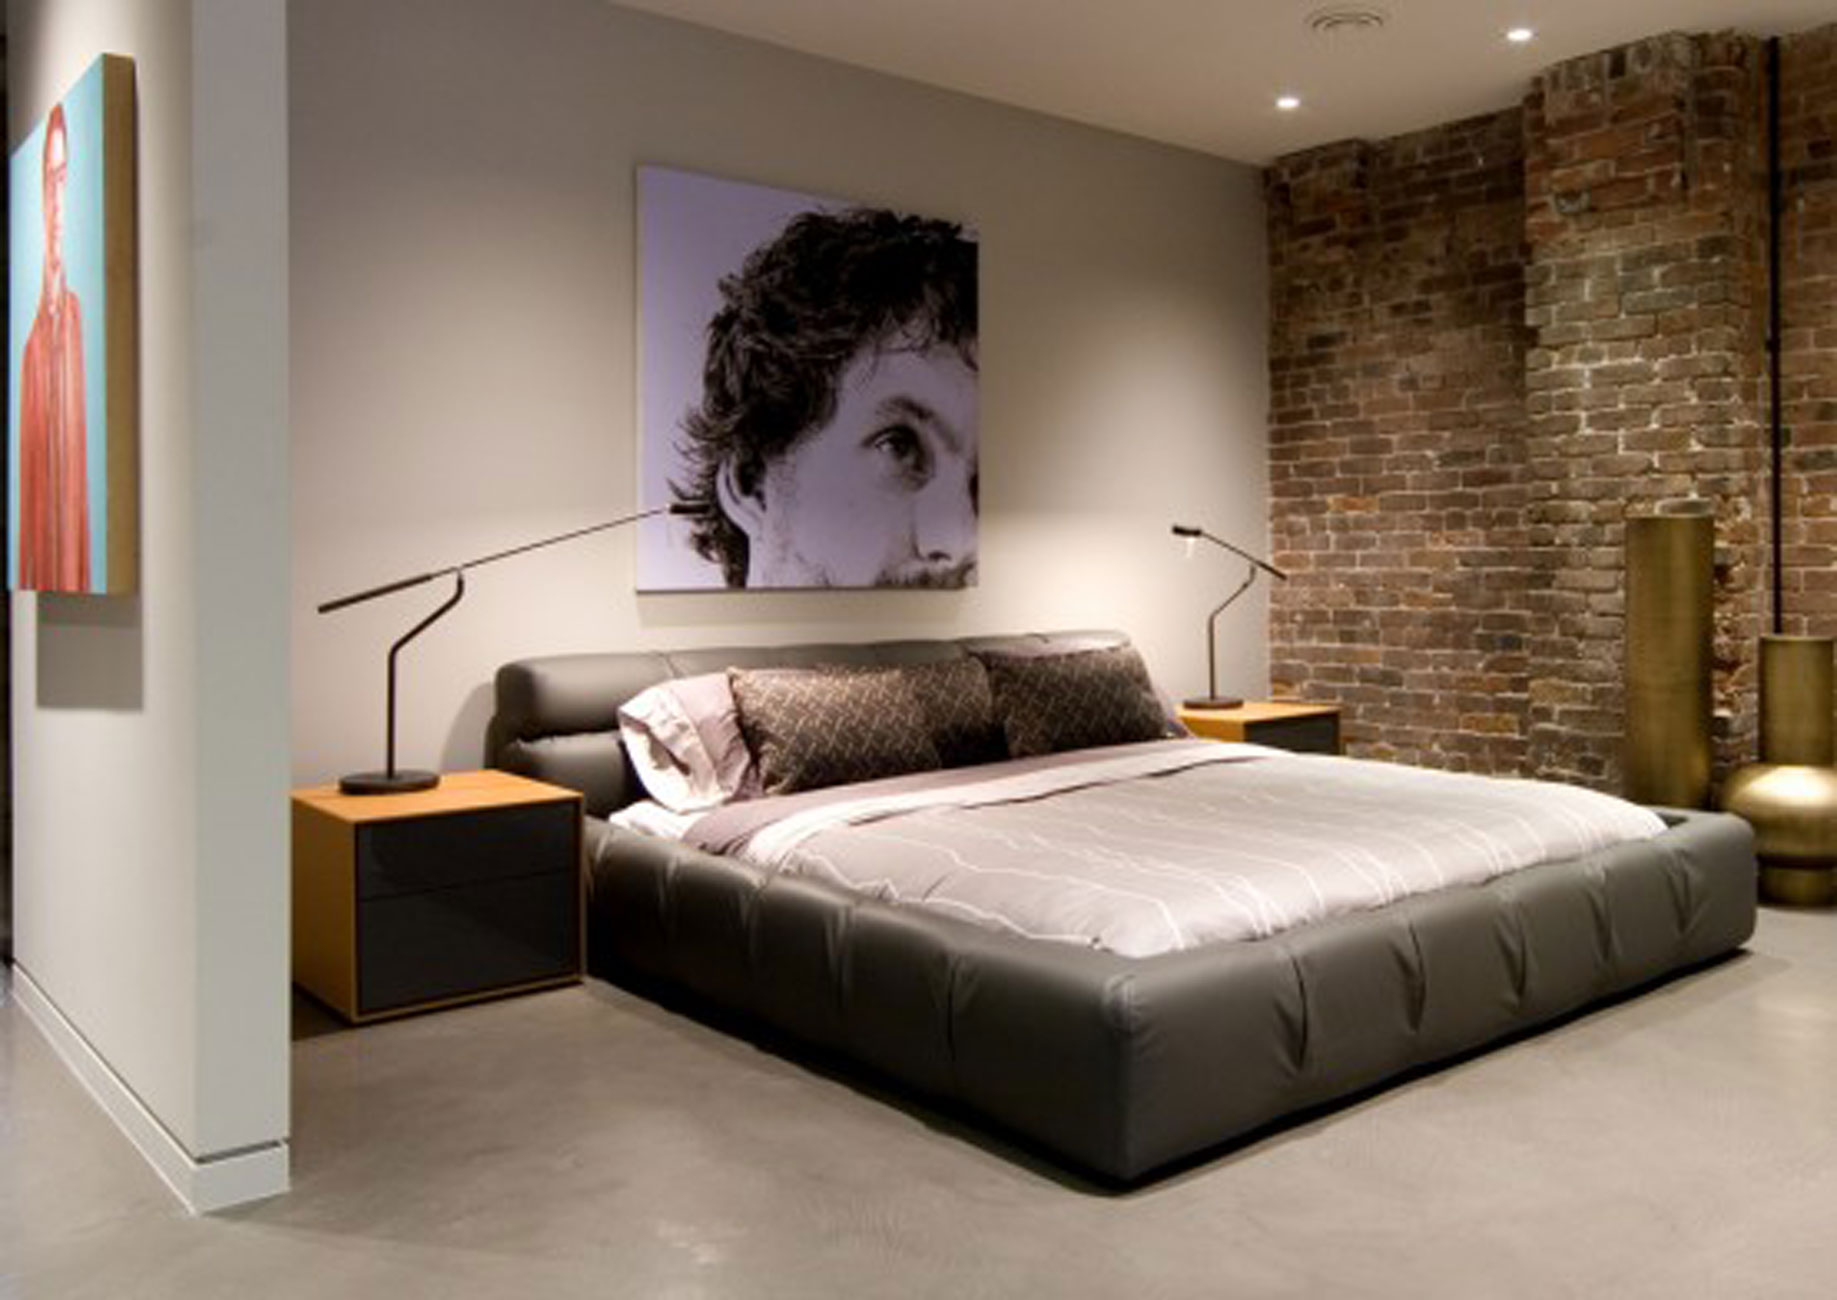 Remodeled 1921 Warehouse into Great Bachelor Apartment in Canada